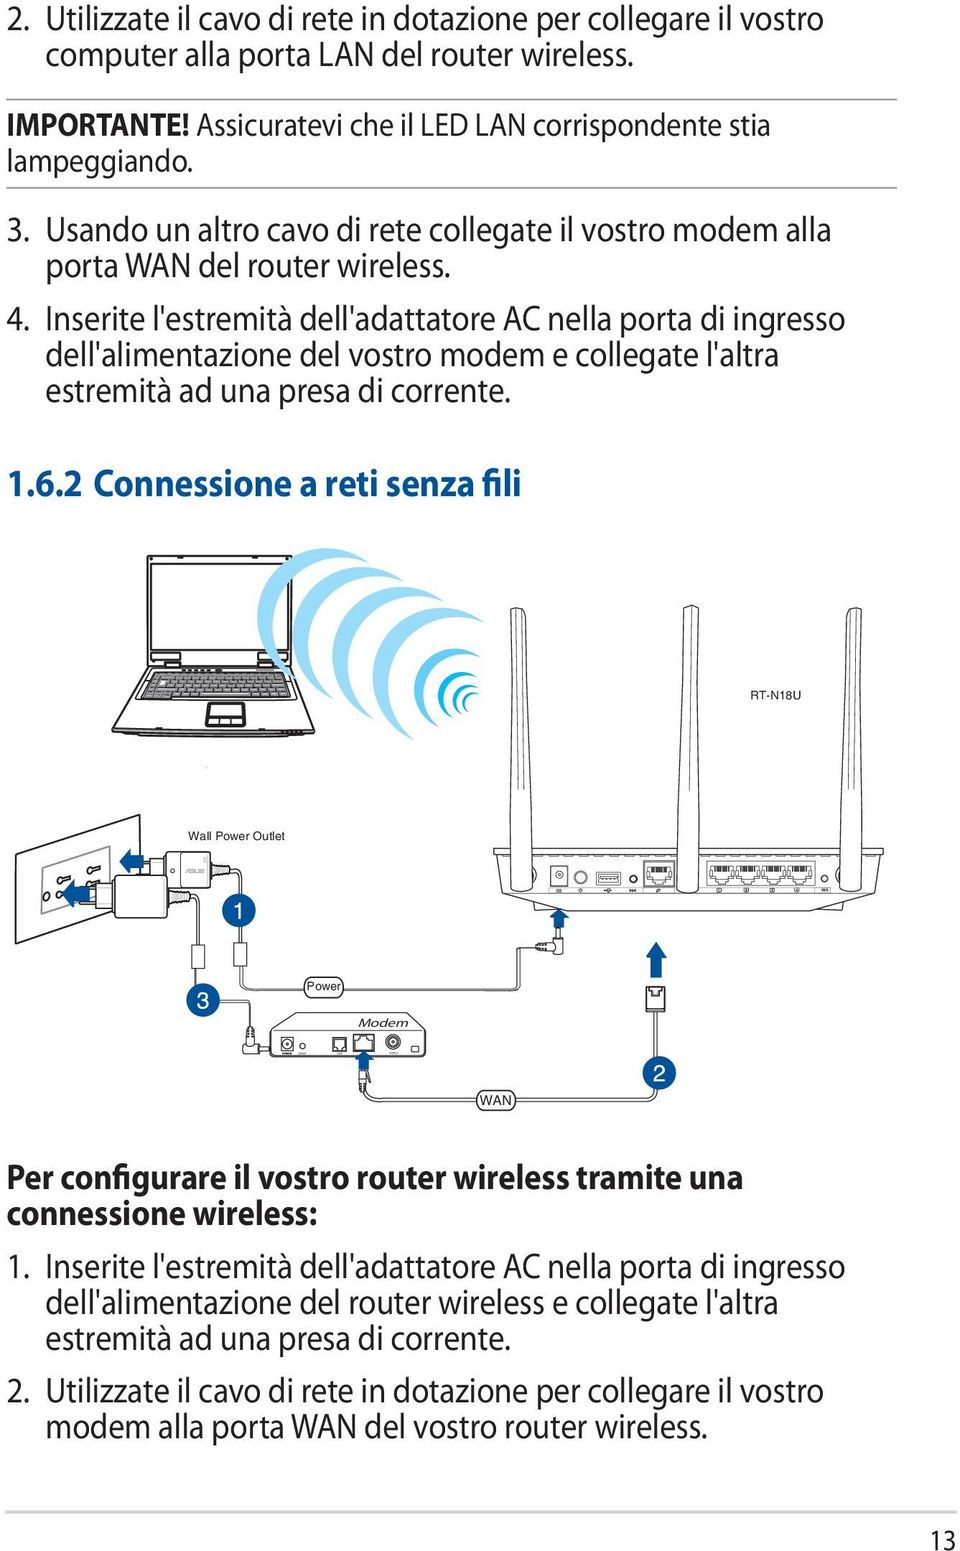 Manuale utente rt n18u router wireless 2 4ghz 600mbps ad - Porta wan router ...